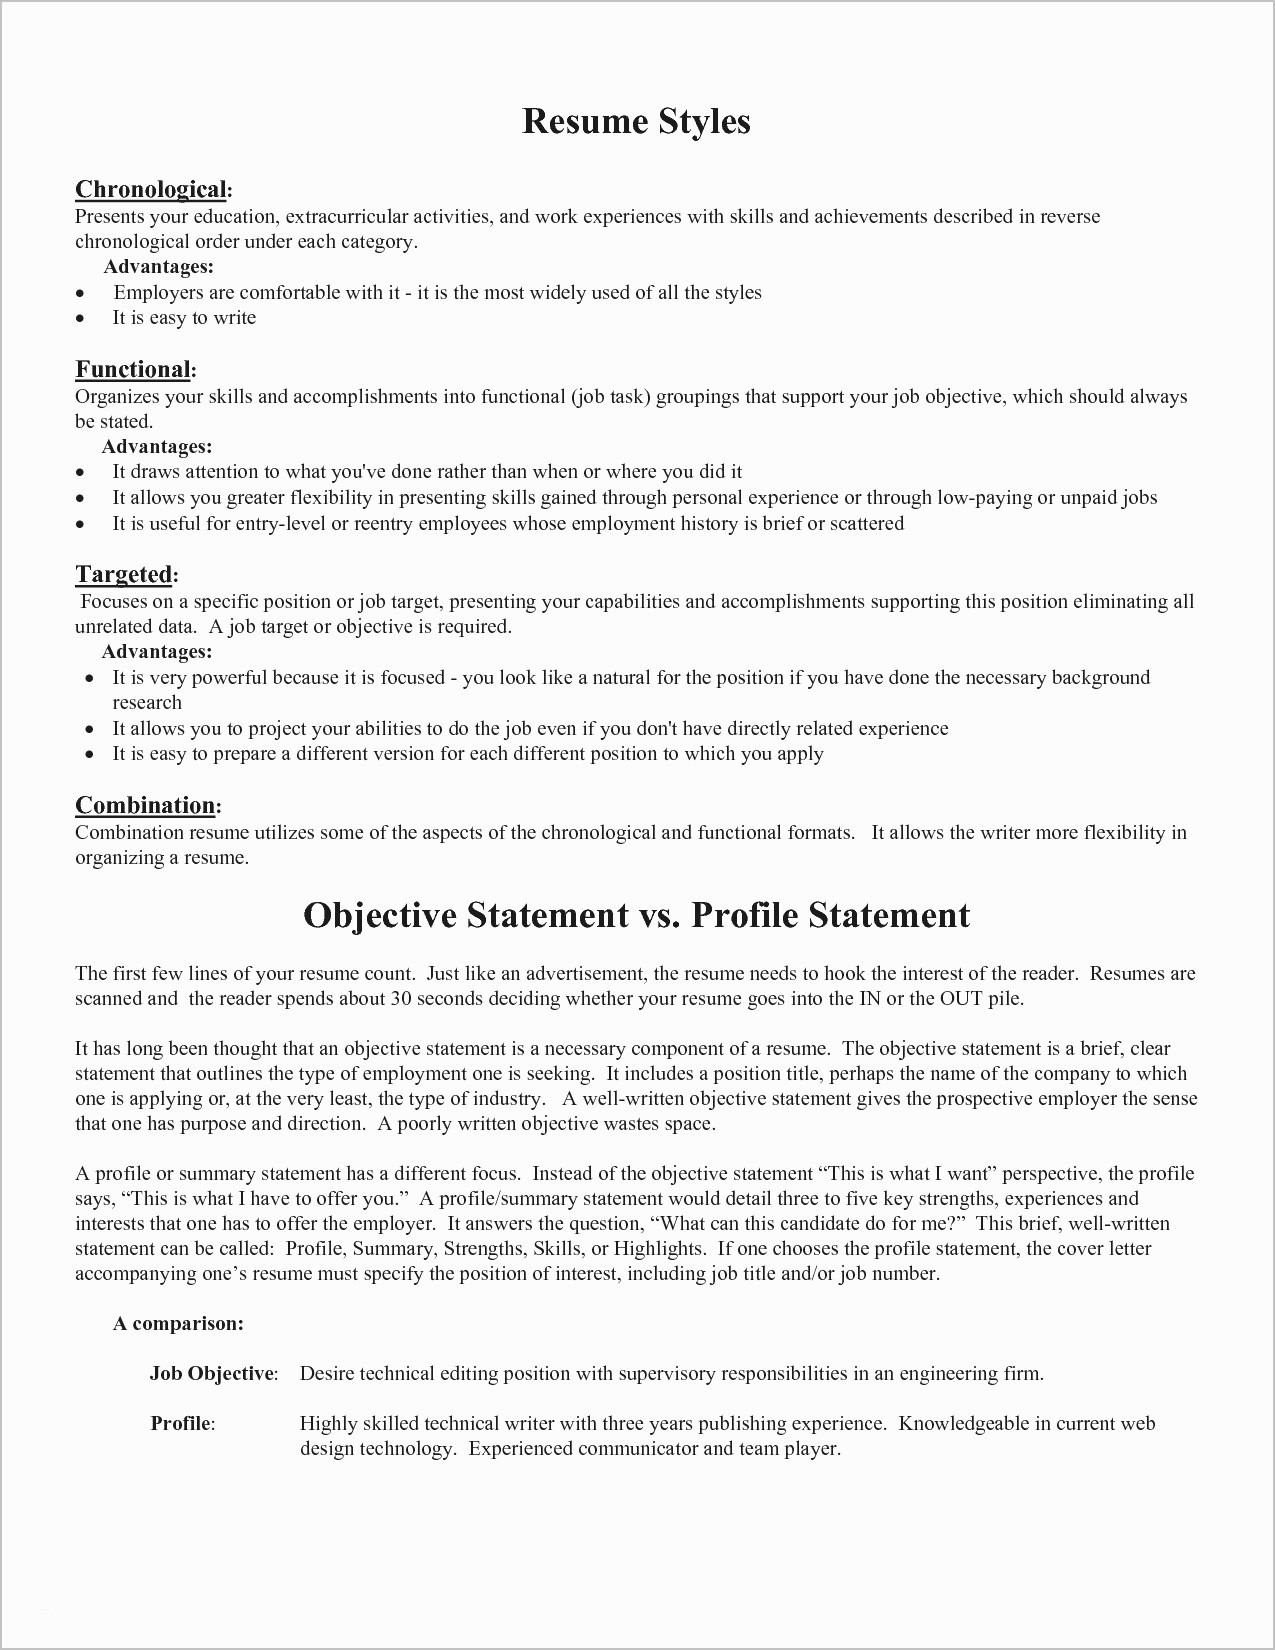 combination resume template for stay at home mom example-Example A bination Resume New Unique Examples Resumes Ecologist Resume 0d Resume Opening Statement bination 7-b